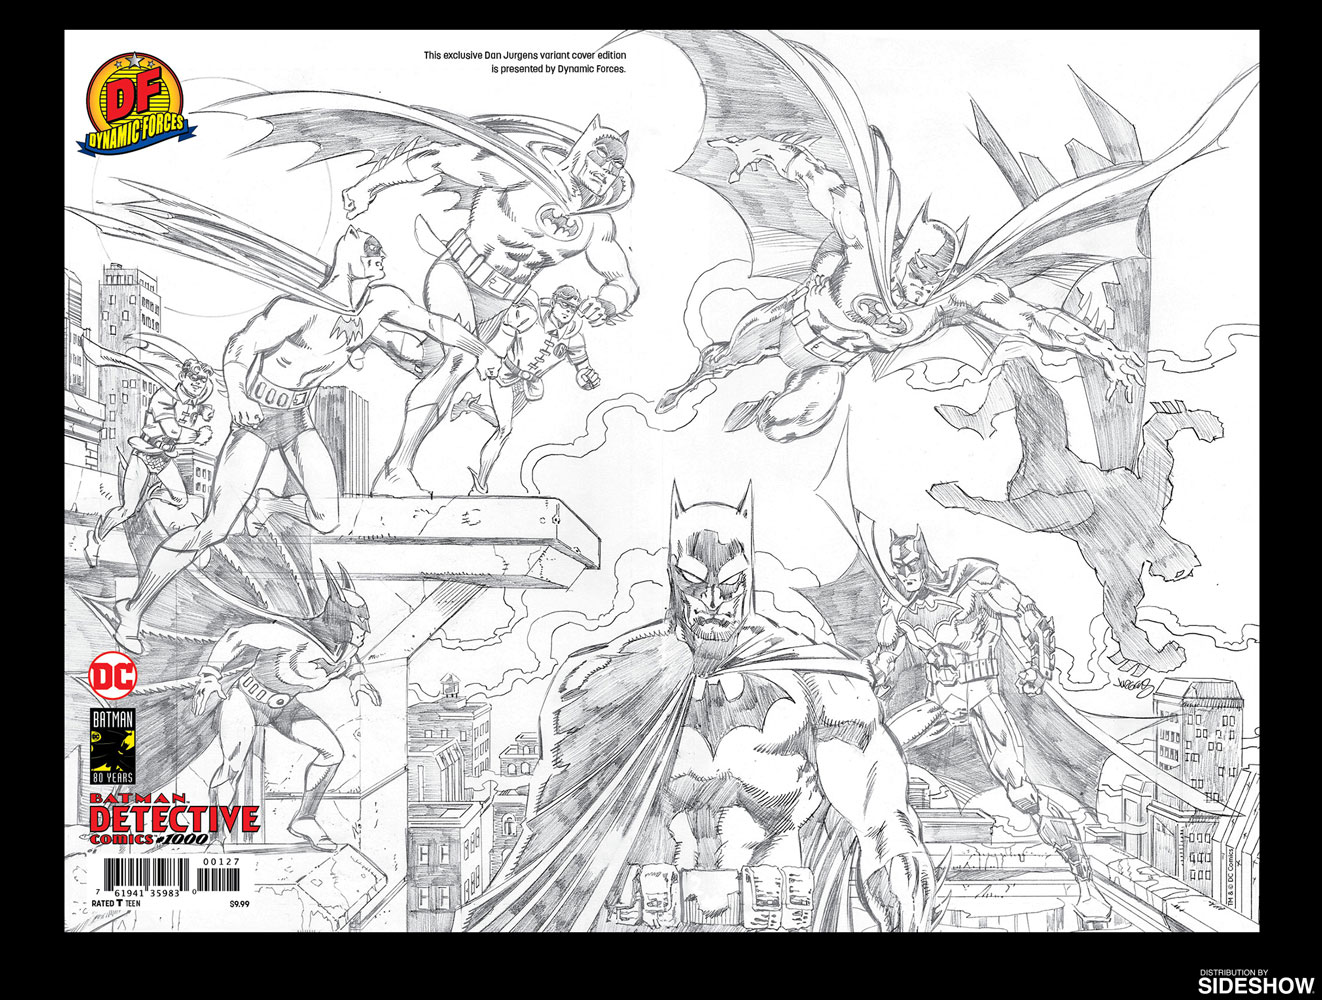 Detective comics 1000 pure pencil sketch edition prototype shown